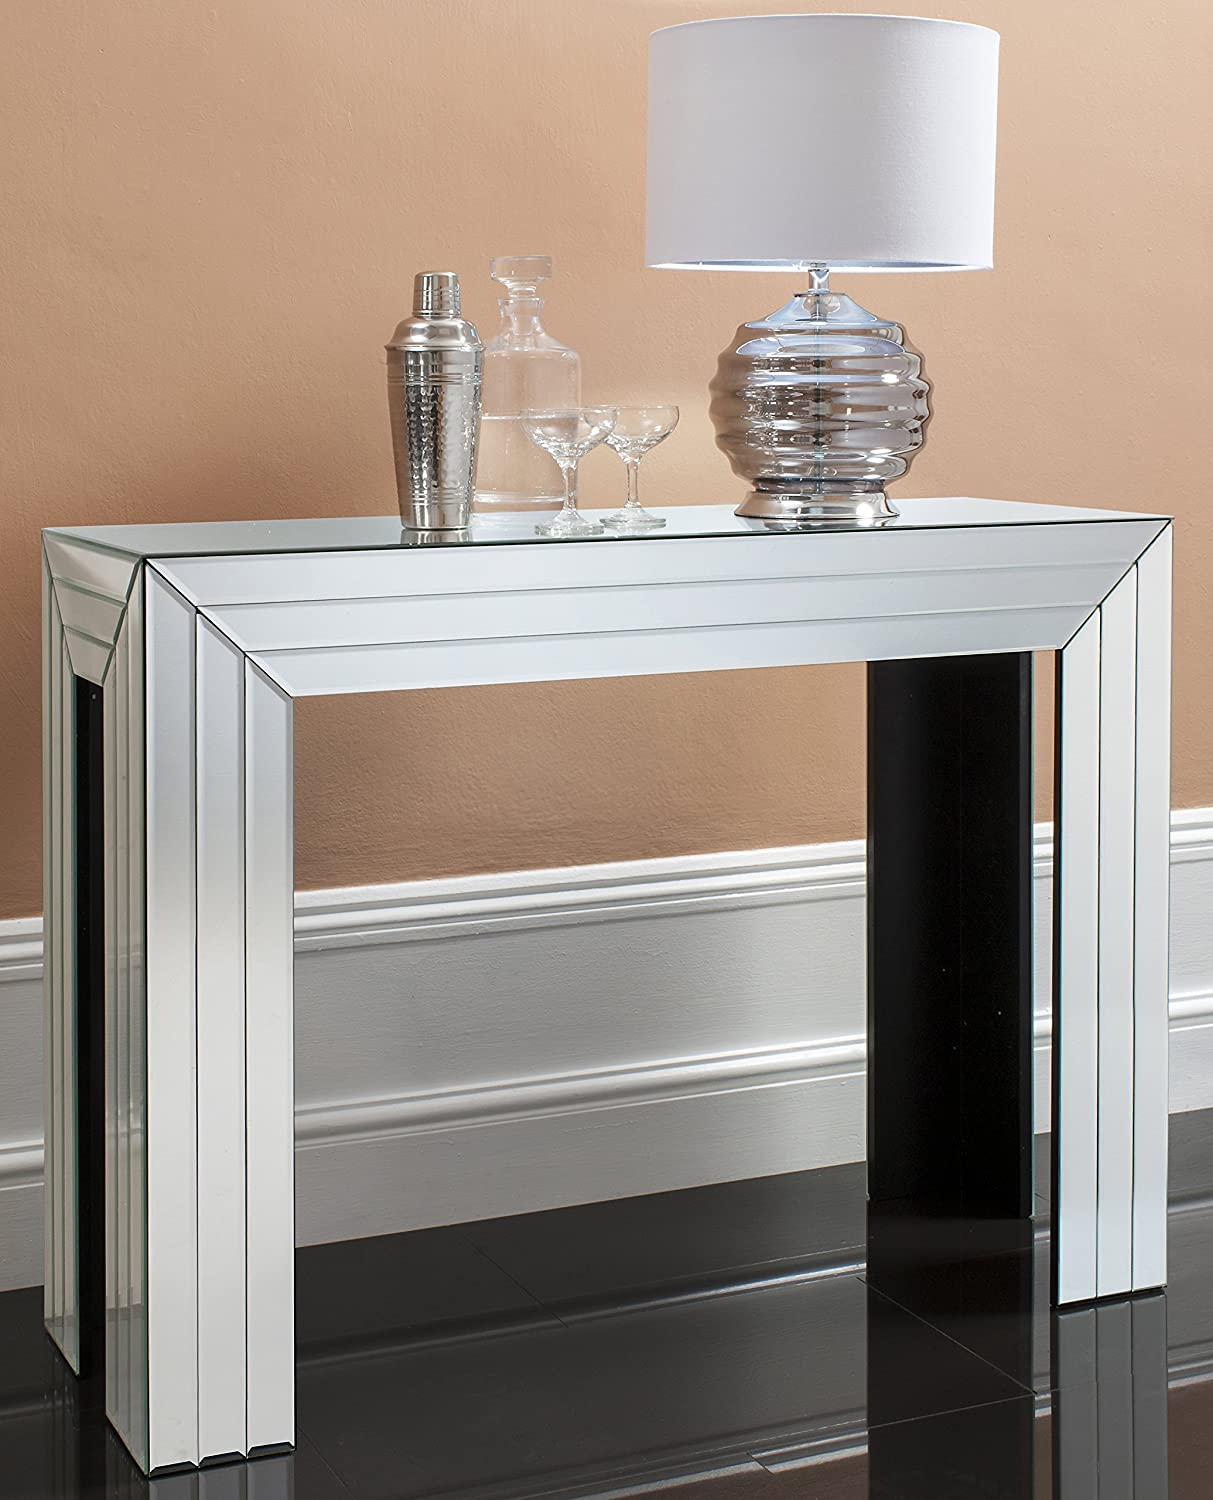 hallway table and mirror corona venetian bevelled mirrored furniture glass console hall table 100cm wide - Mirror Furniture